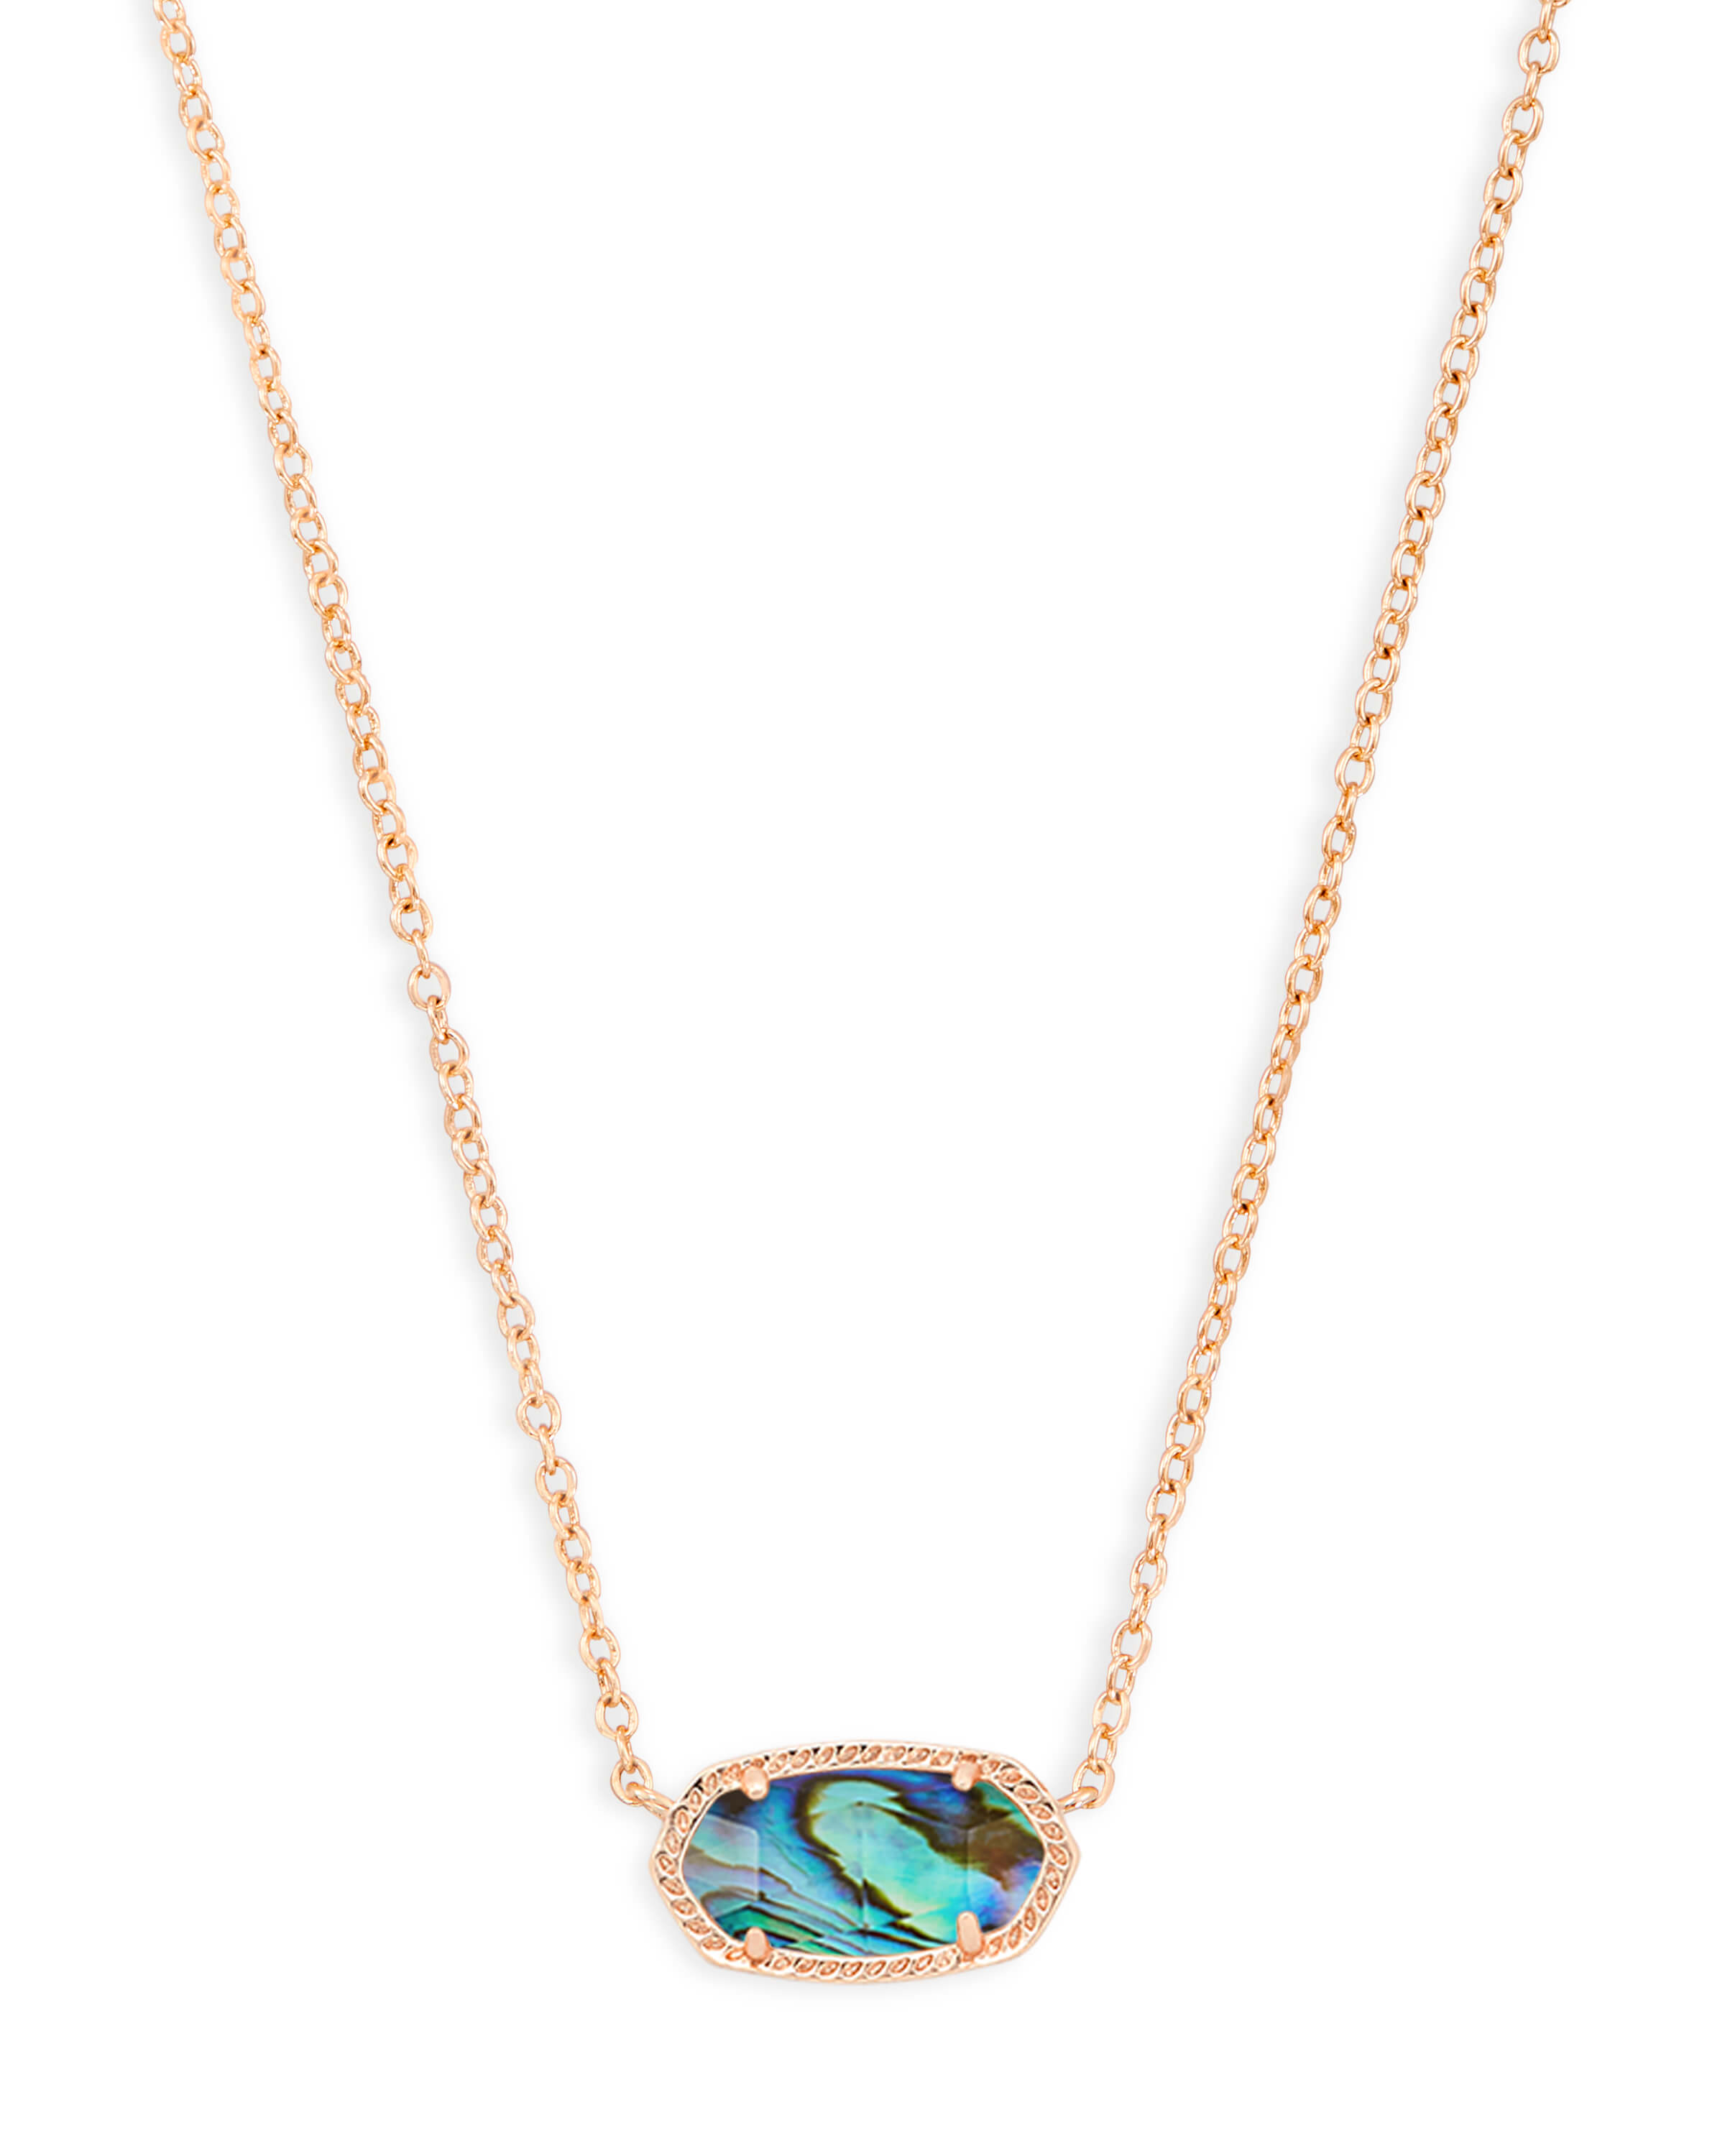 ef83b84d0a71 Elisa Rose Gold Pendant Necklace in Abalone Shell